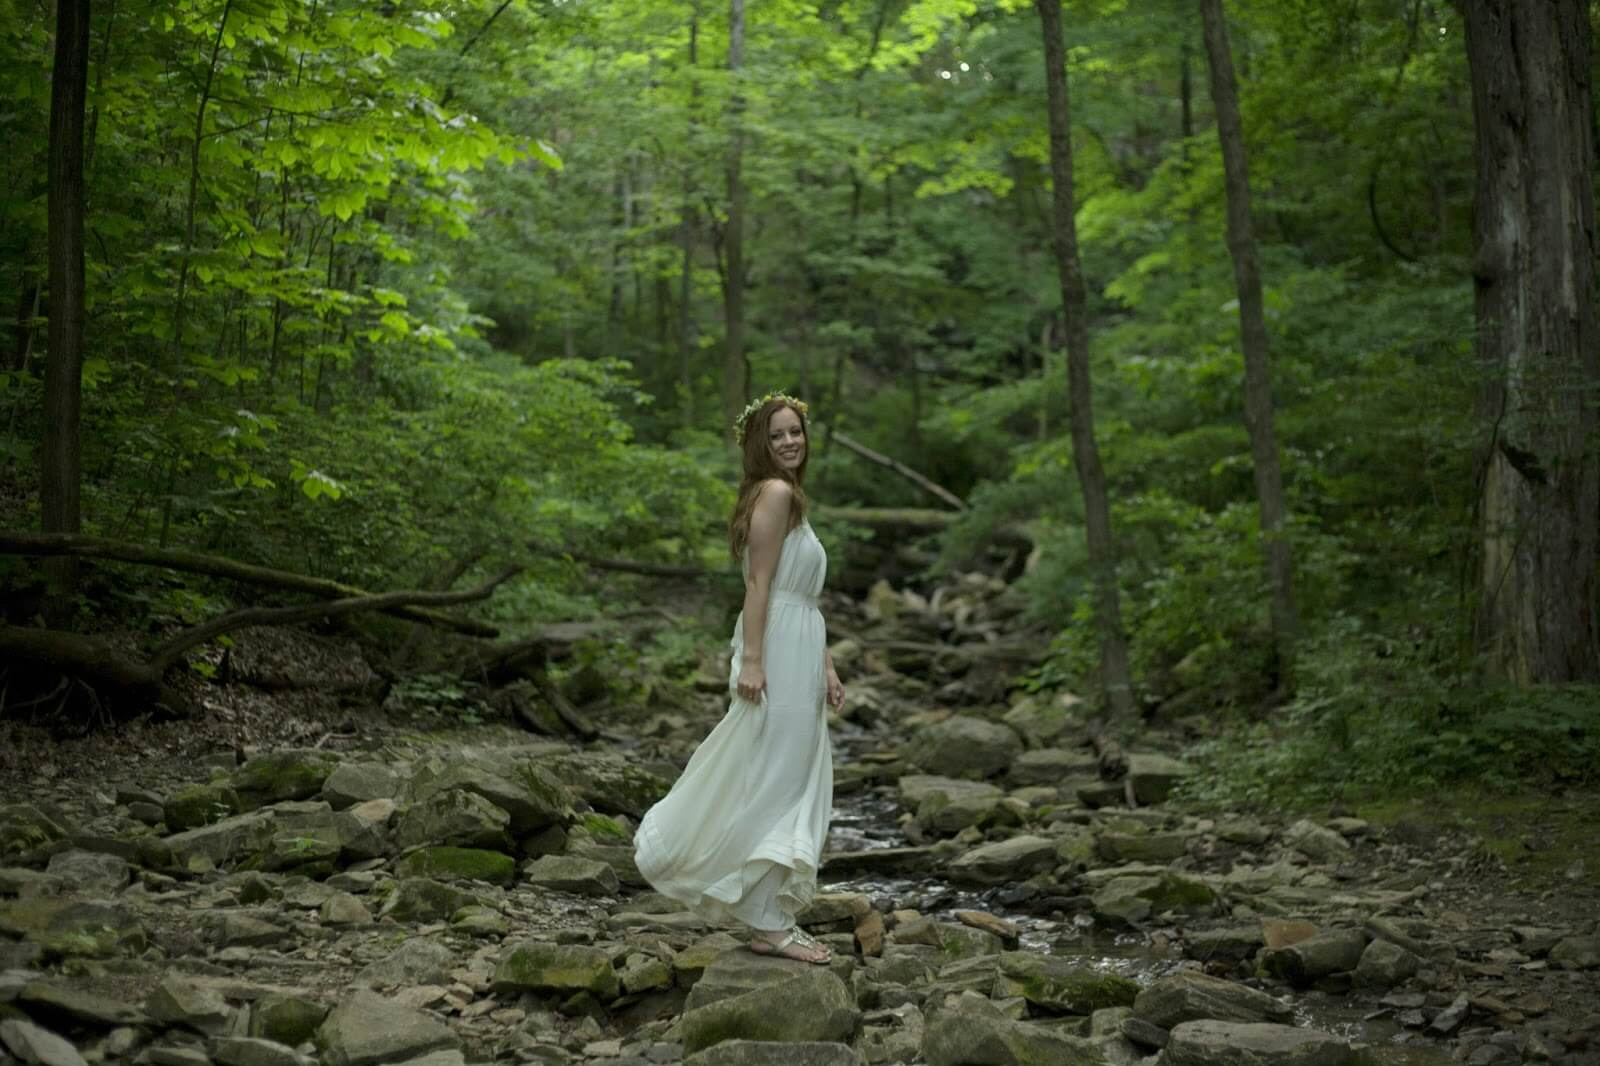 zoomed out shot of girl in white dress in forest